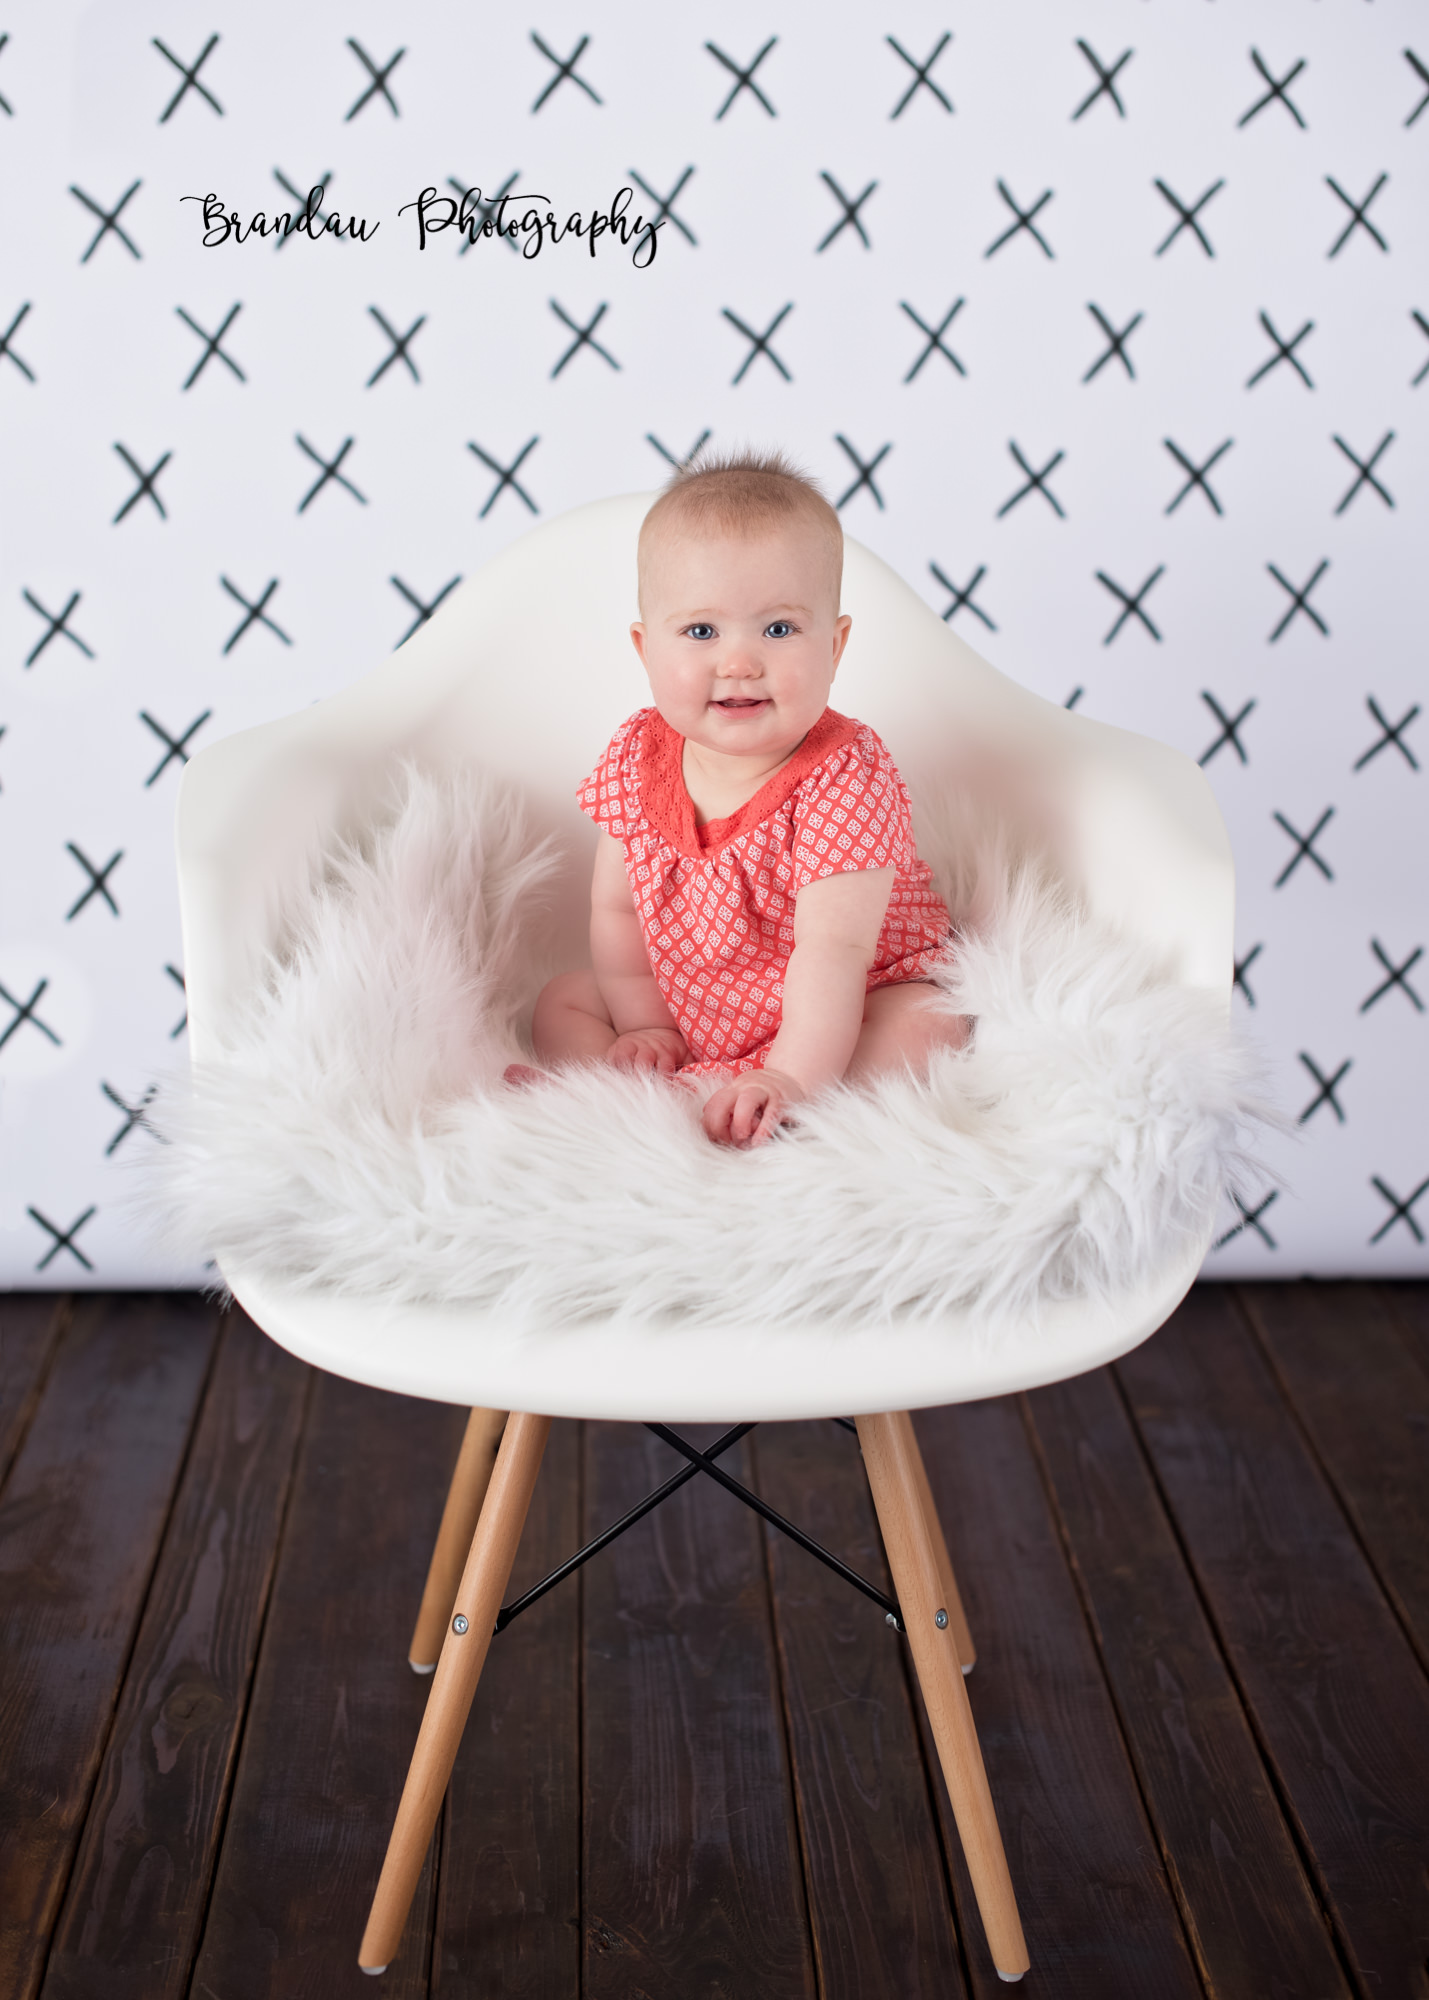 Brandau Photography_ 6 month girl chair.jpg